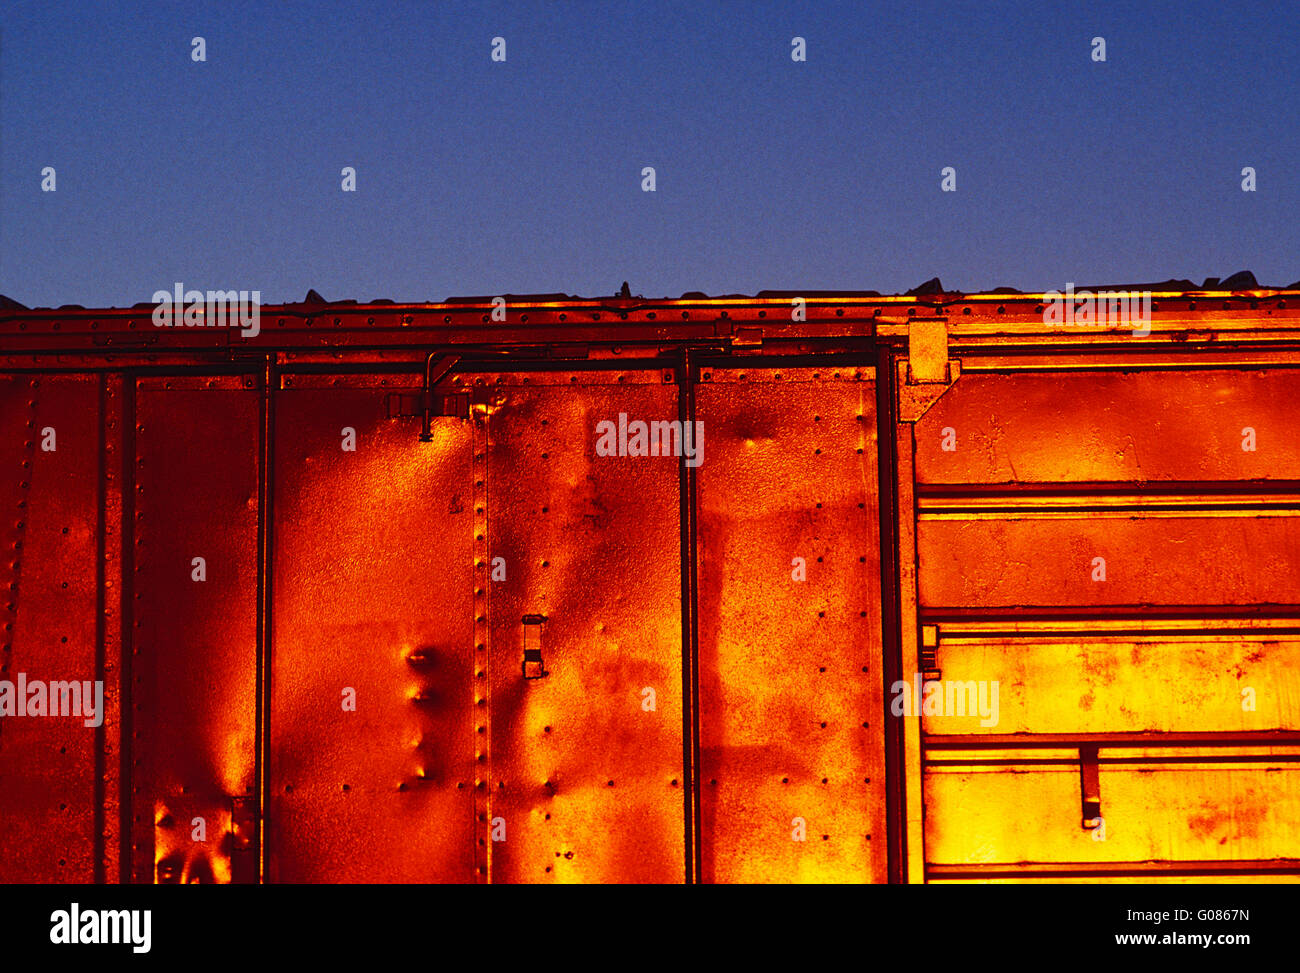 Setting sun reflects off of freight train car - Stock Image